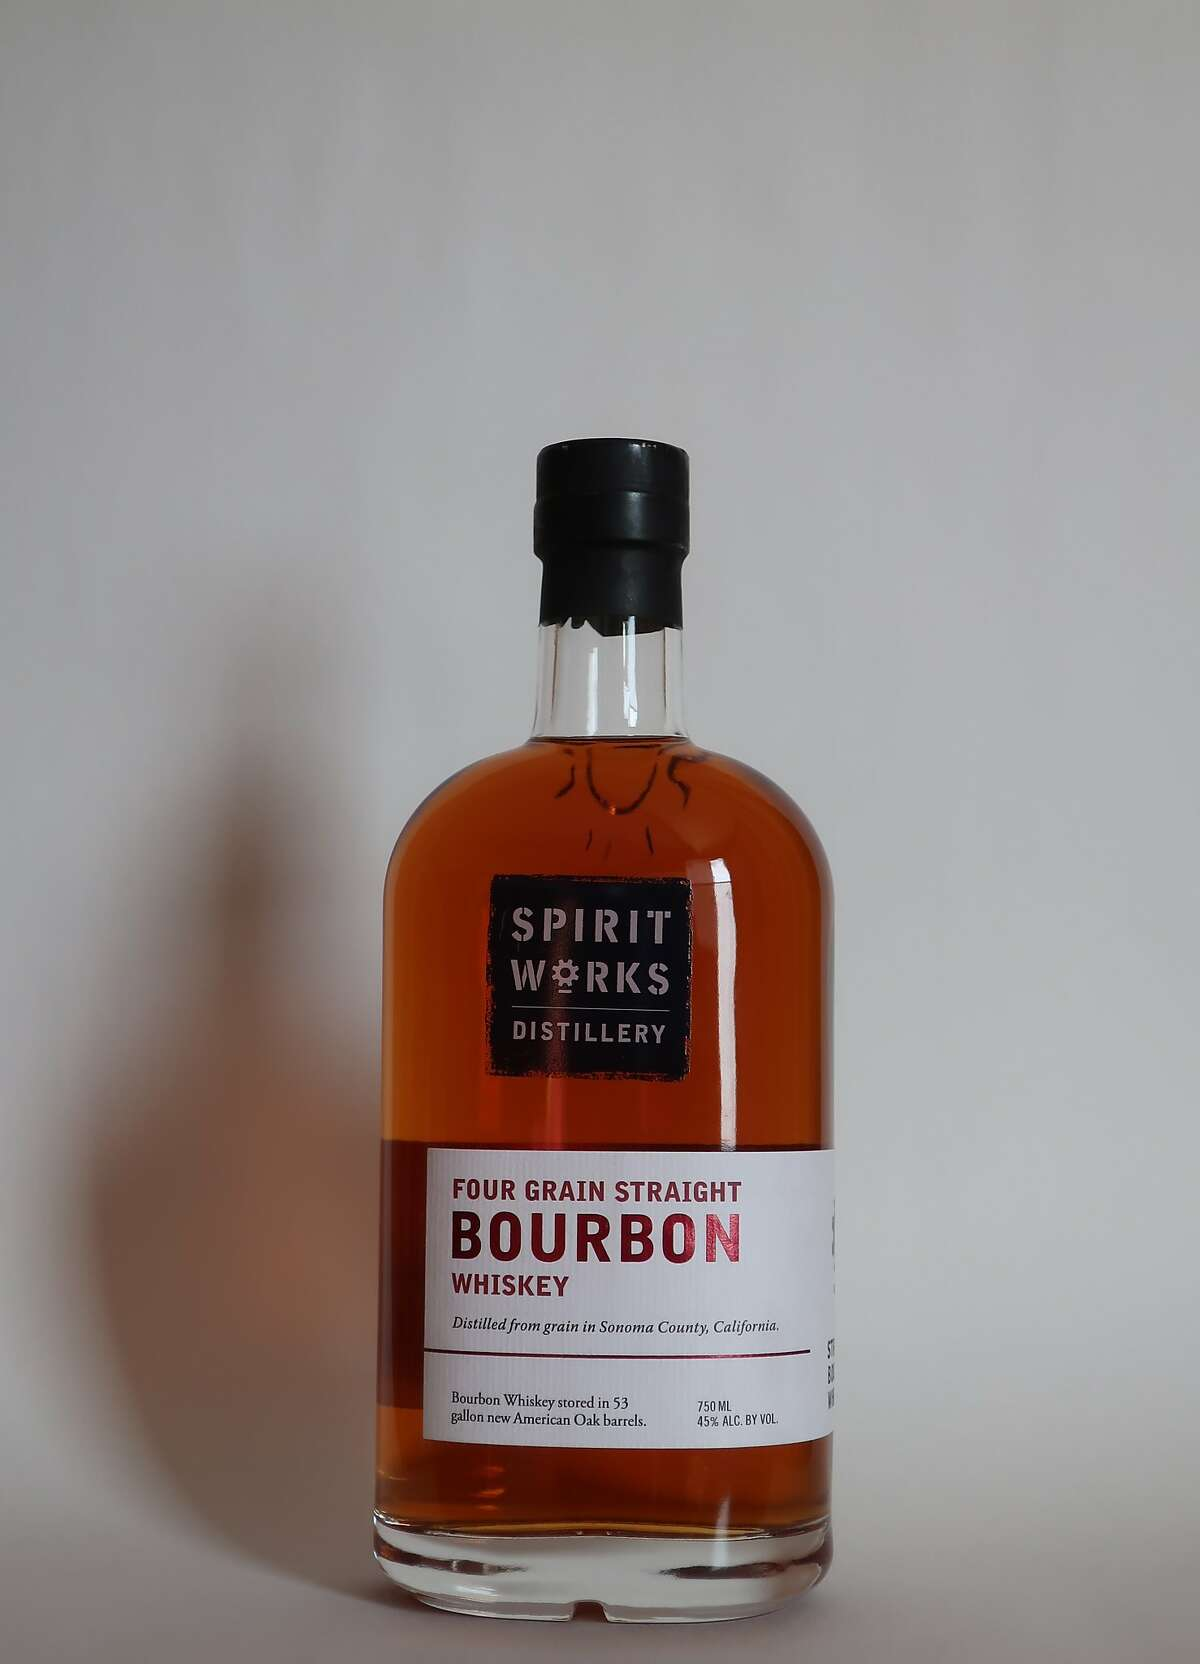 Good Food Awards winner Spirit Works Distillery was honored for its Four Grain Straight Bourbon, made in Sebastopol.